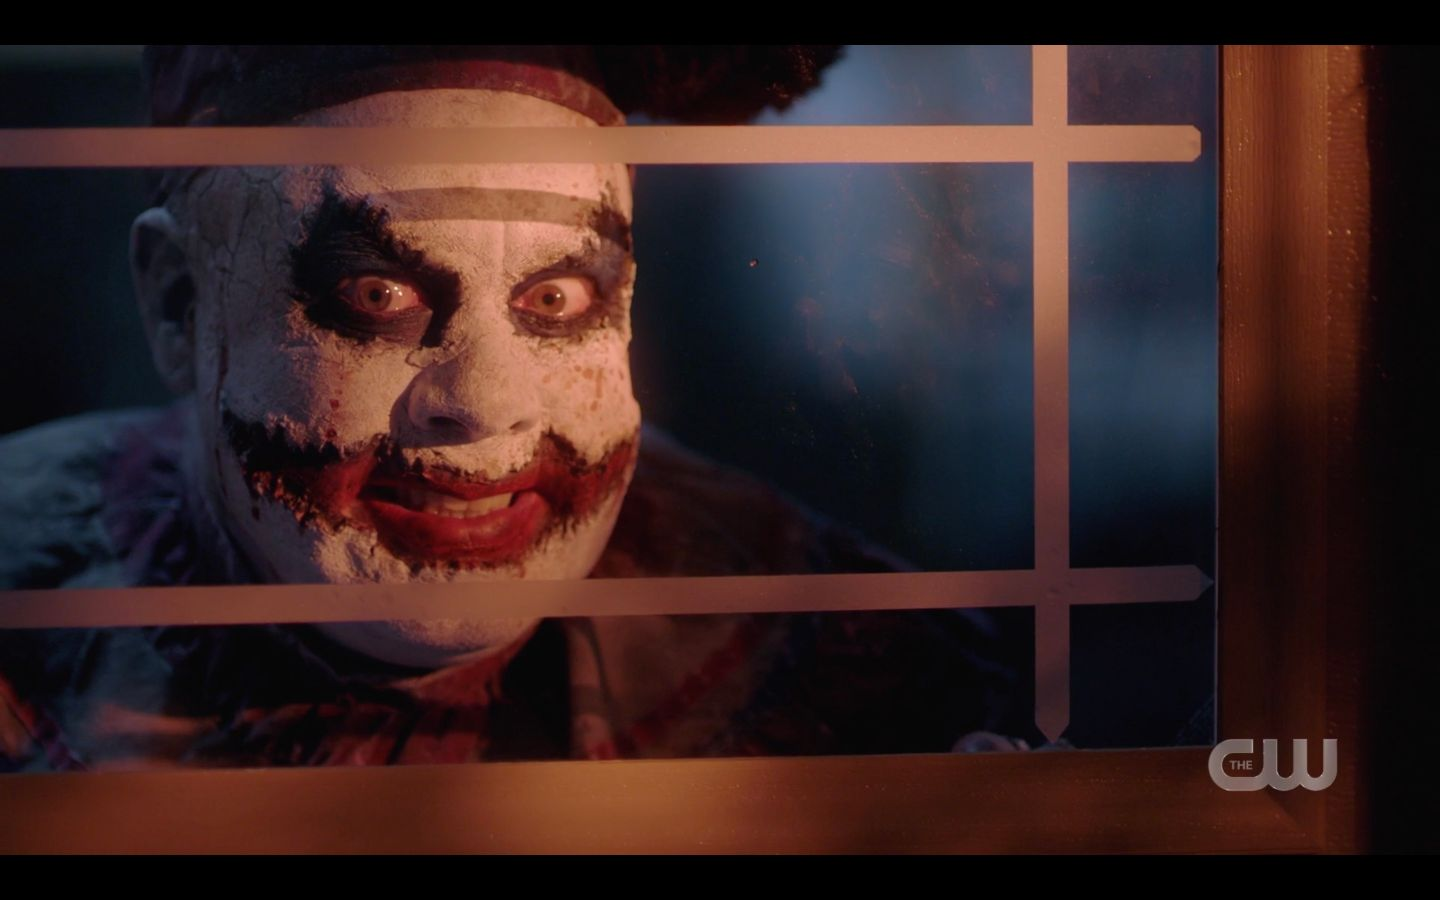 Creepy clown Belphigor looking out window at Sam Winchester SPN 1501